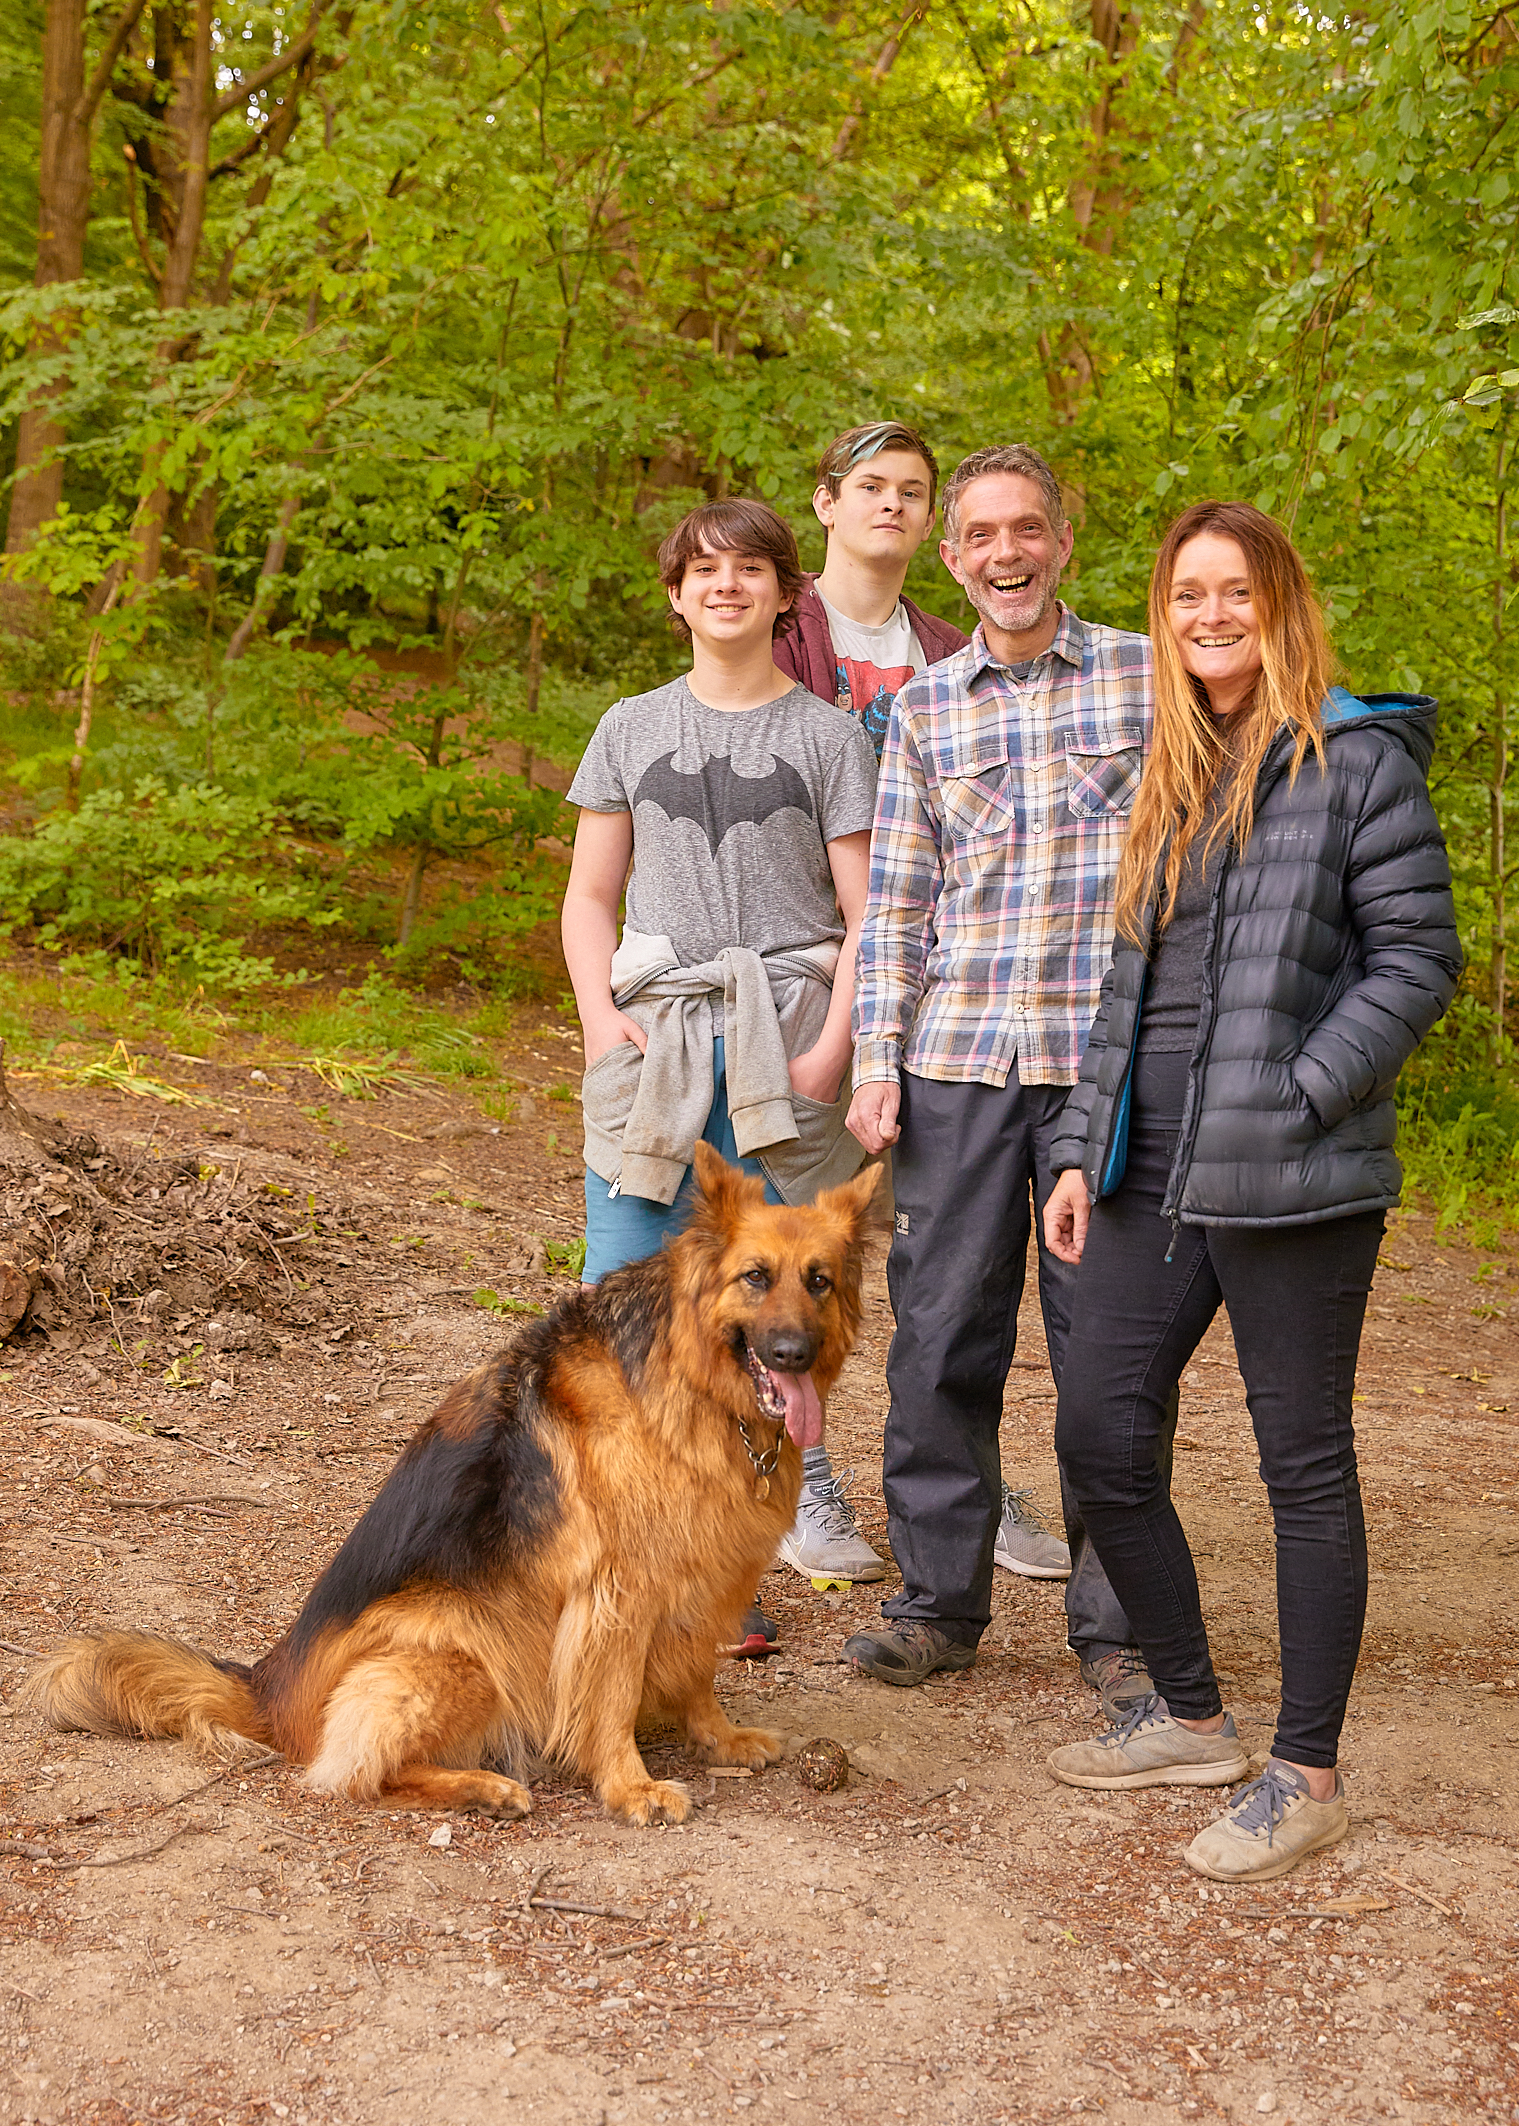 Above: Photo of the Jones-Blackett family that was taken by Willie Runte a dog-walking professional photographer friend as part of his 'dog walkers during lockdown' project.